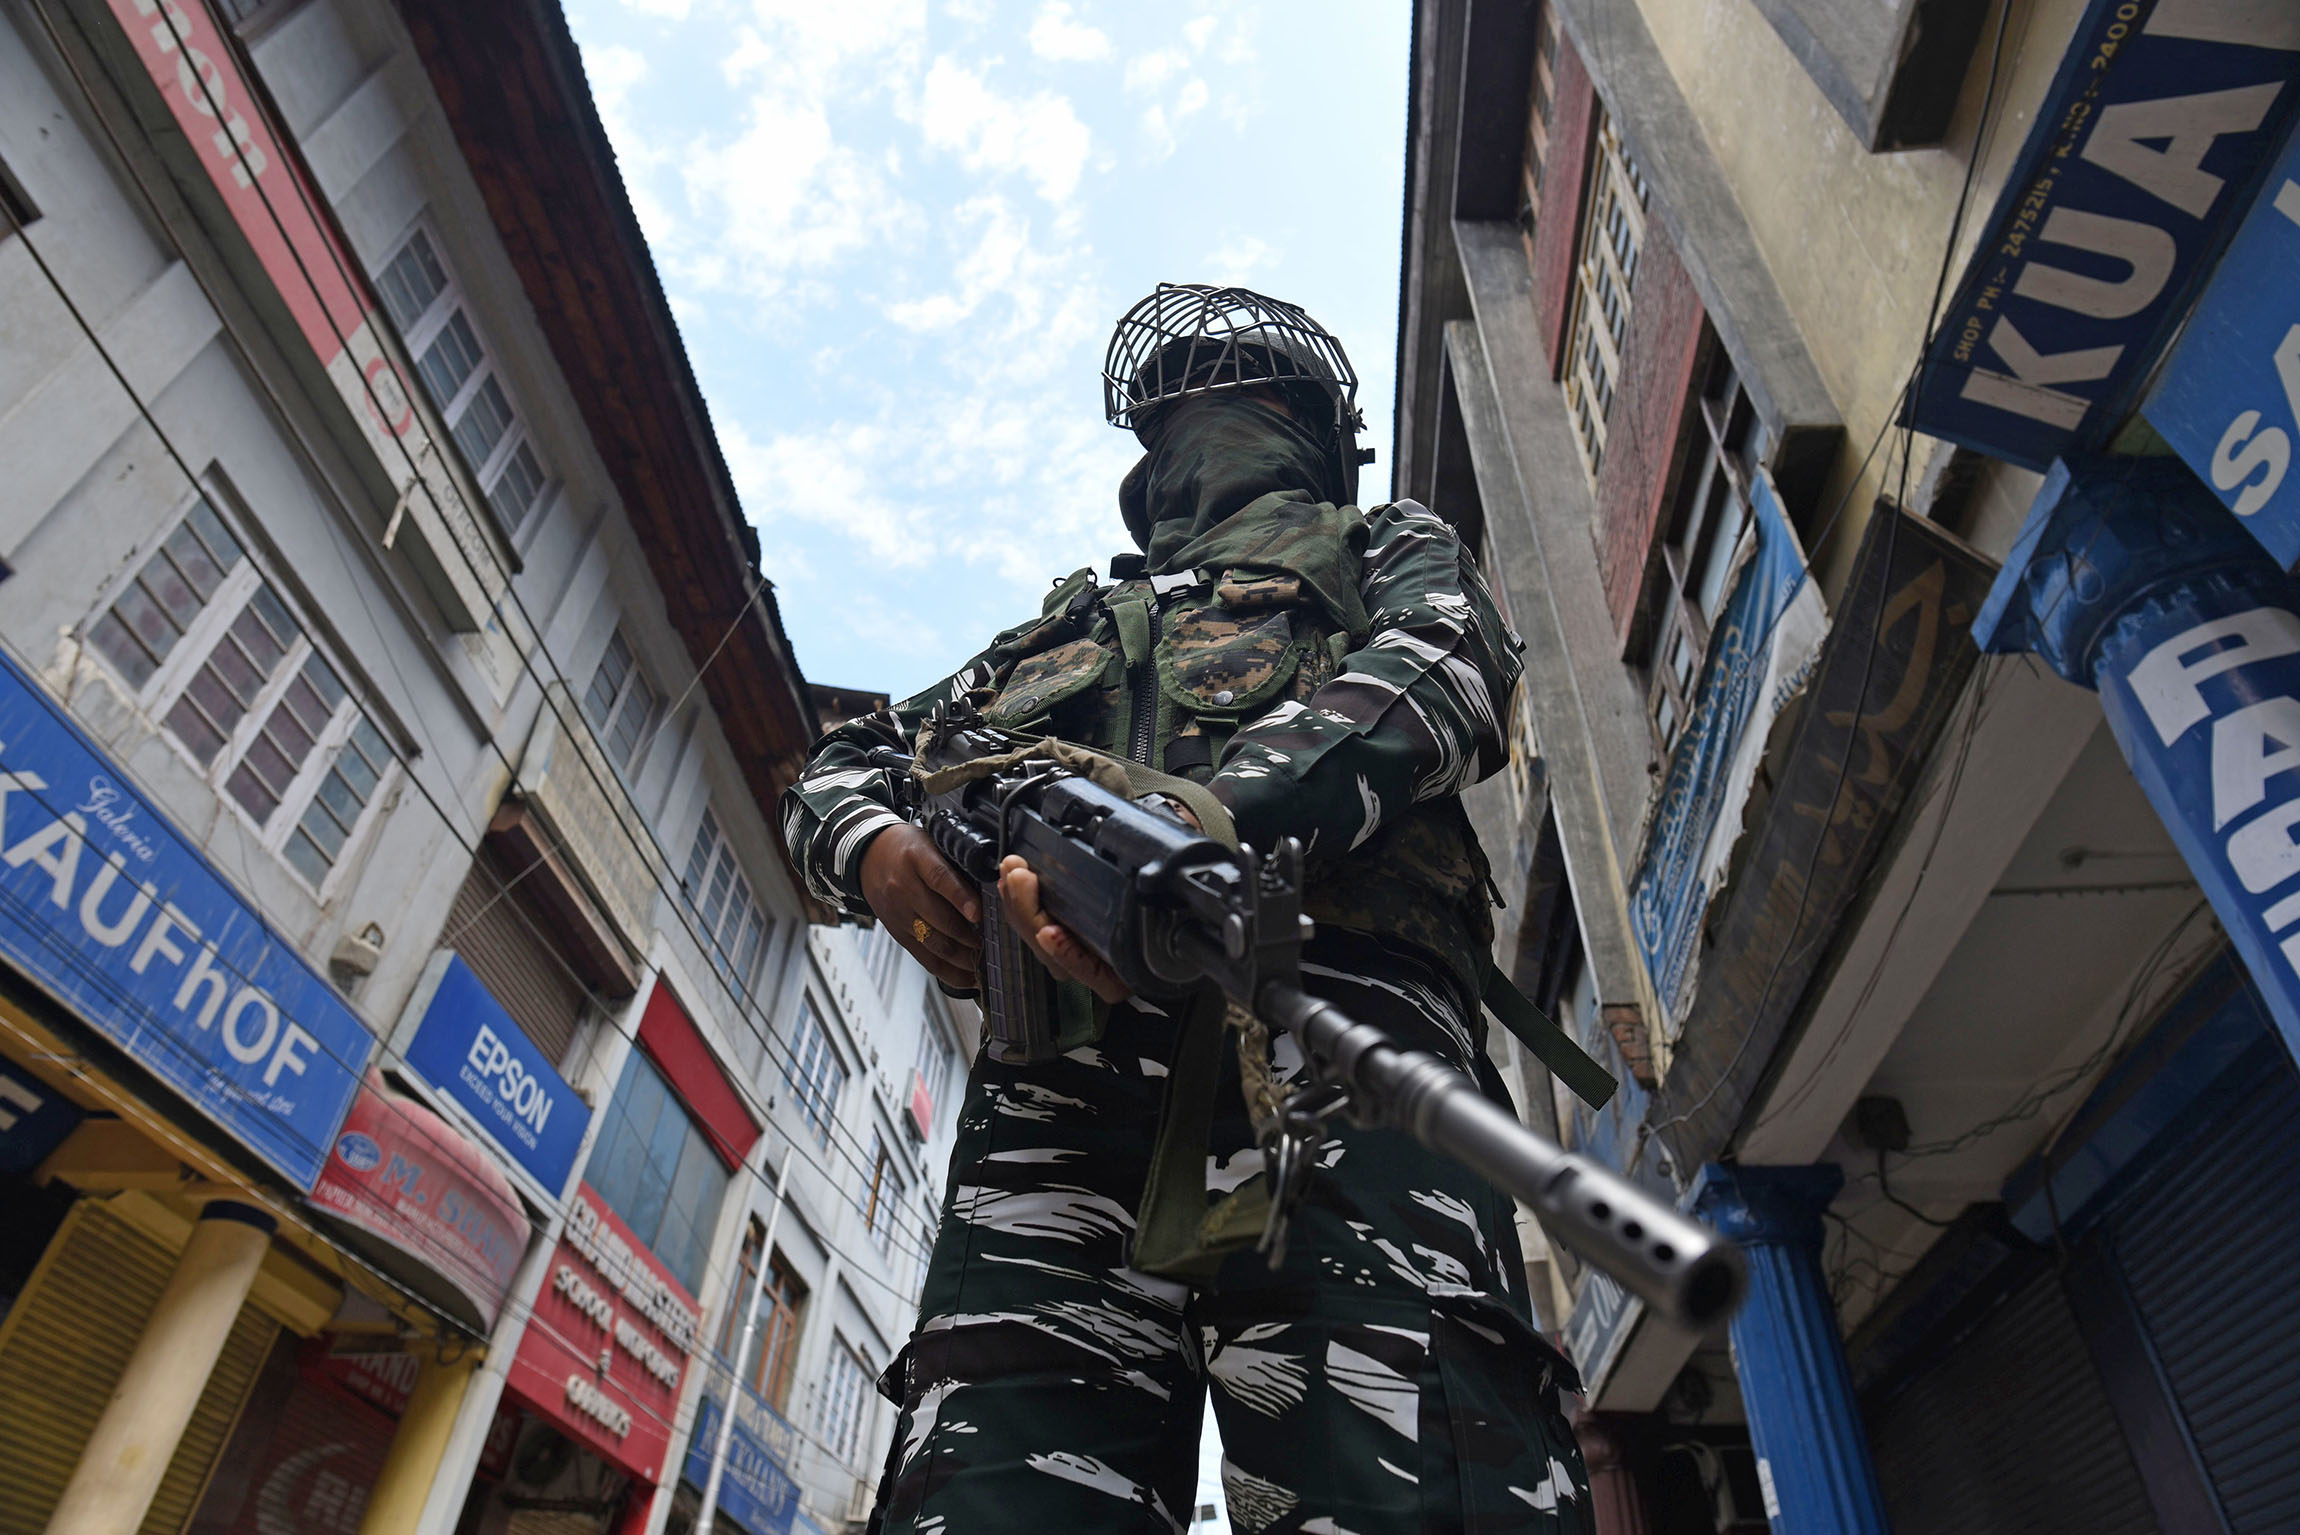 5 August 2020: A paramilitary soldier stands guard in Srinagar on the first anniversary of the abrogation of Article 370, which had guaranteed Jammu and Kashmir a measure of autonomy. (Photograph by Waseem Andrabi/ Hindustan Times via Getty Images)